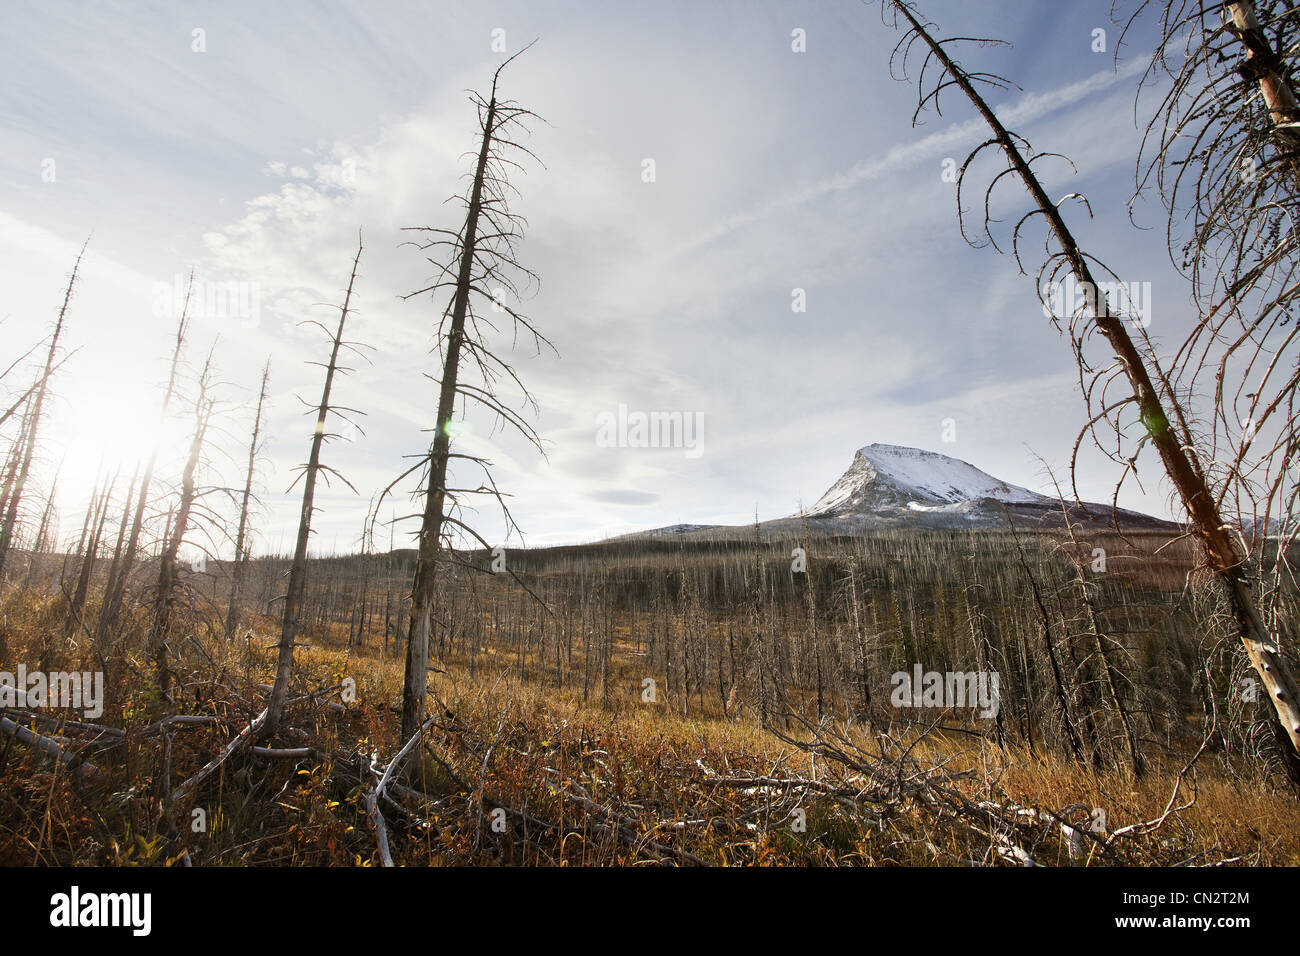 Dead Trees From Fire With Snow Covered Mountain in Background, Montana, USA - Stock Image